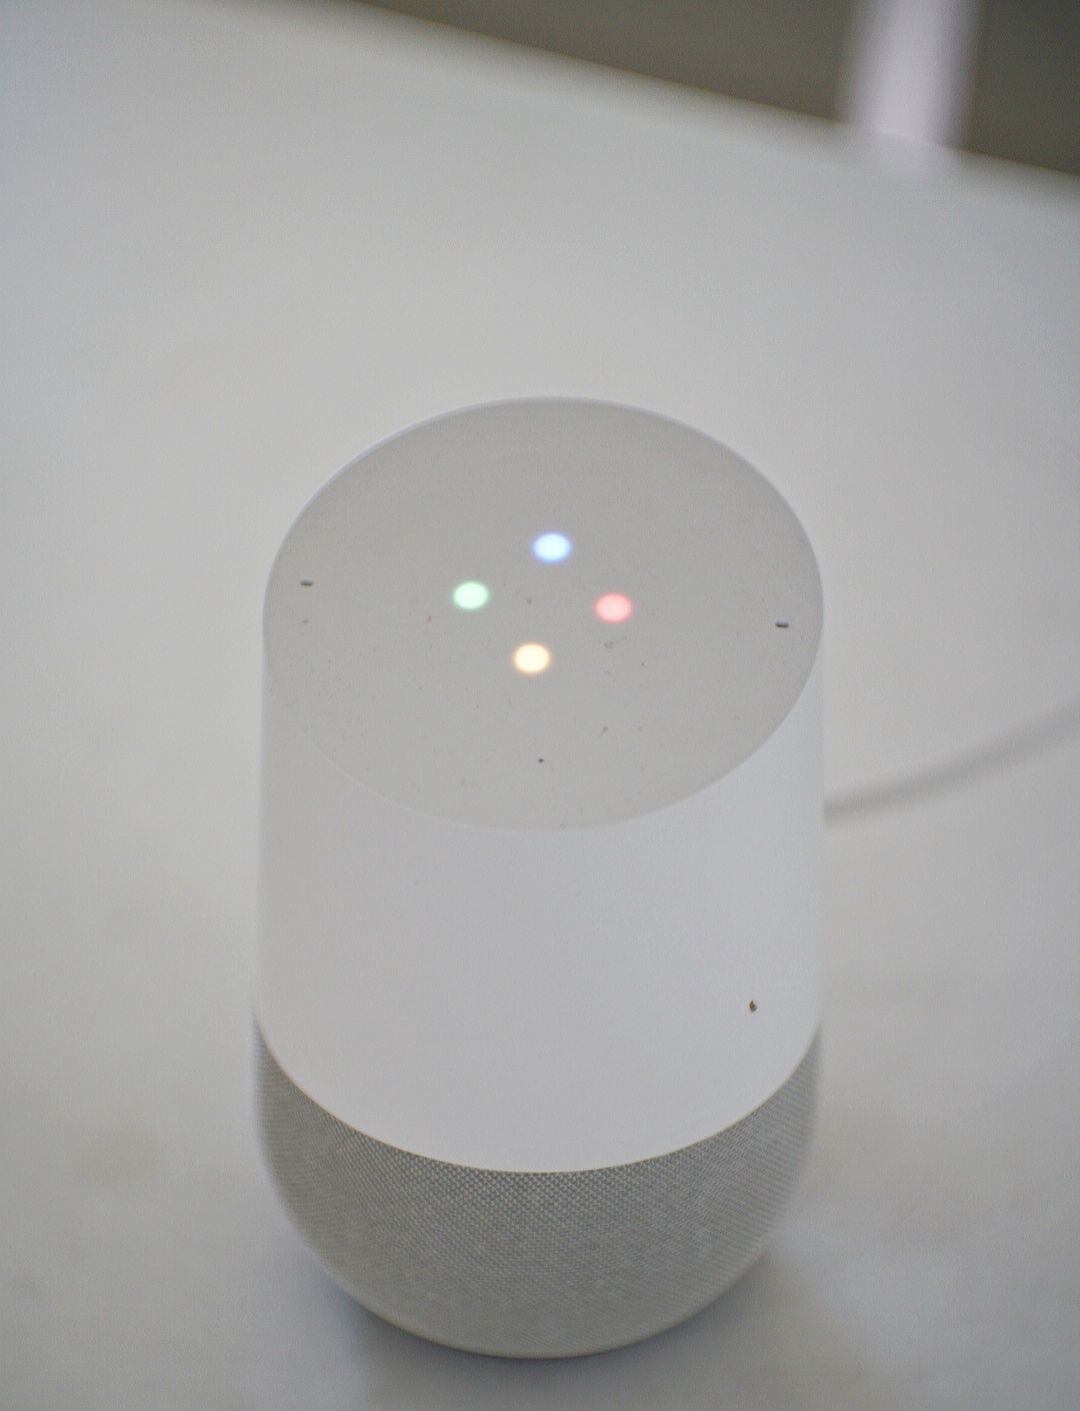 Google Home , the voice assistant that allows you to control your smart home.